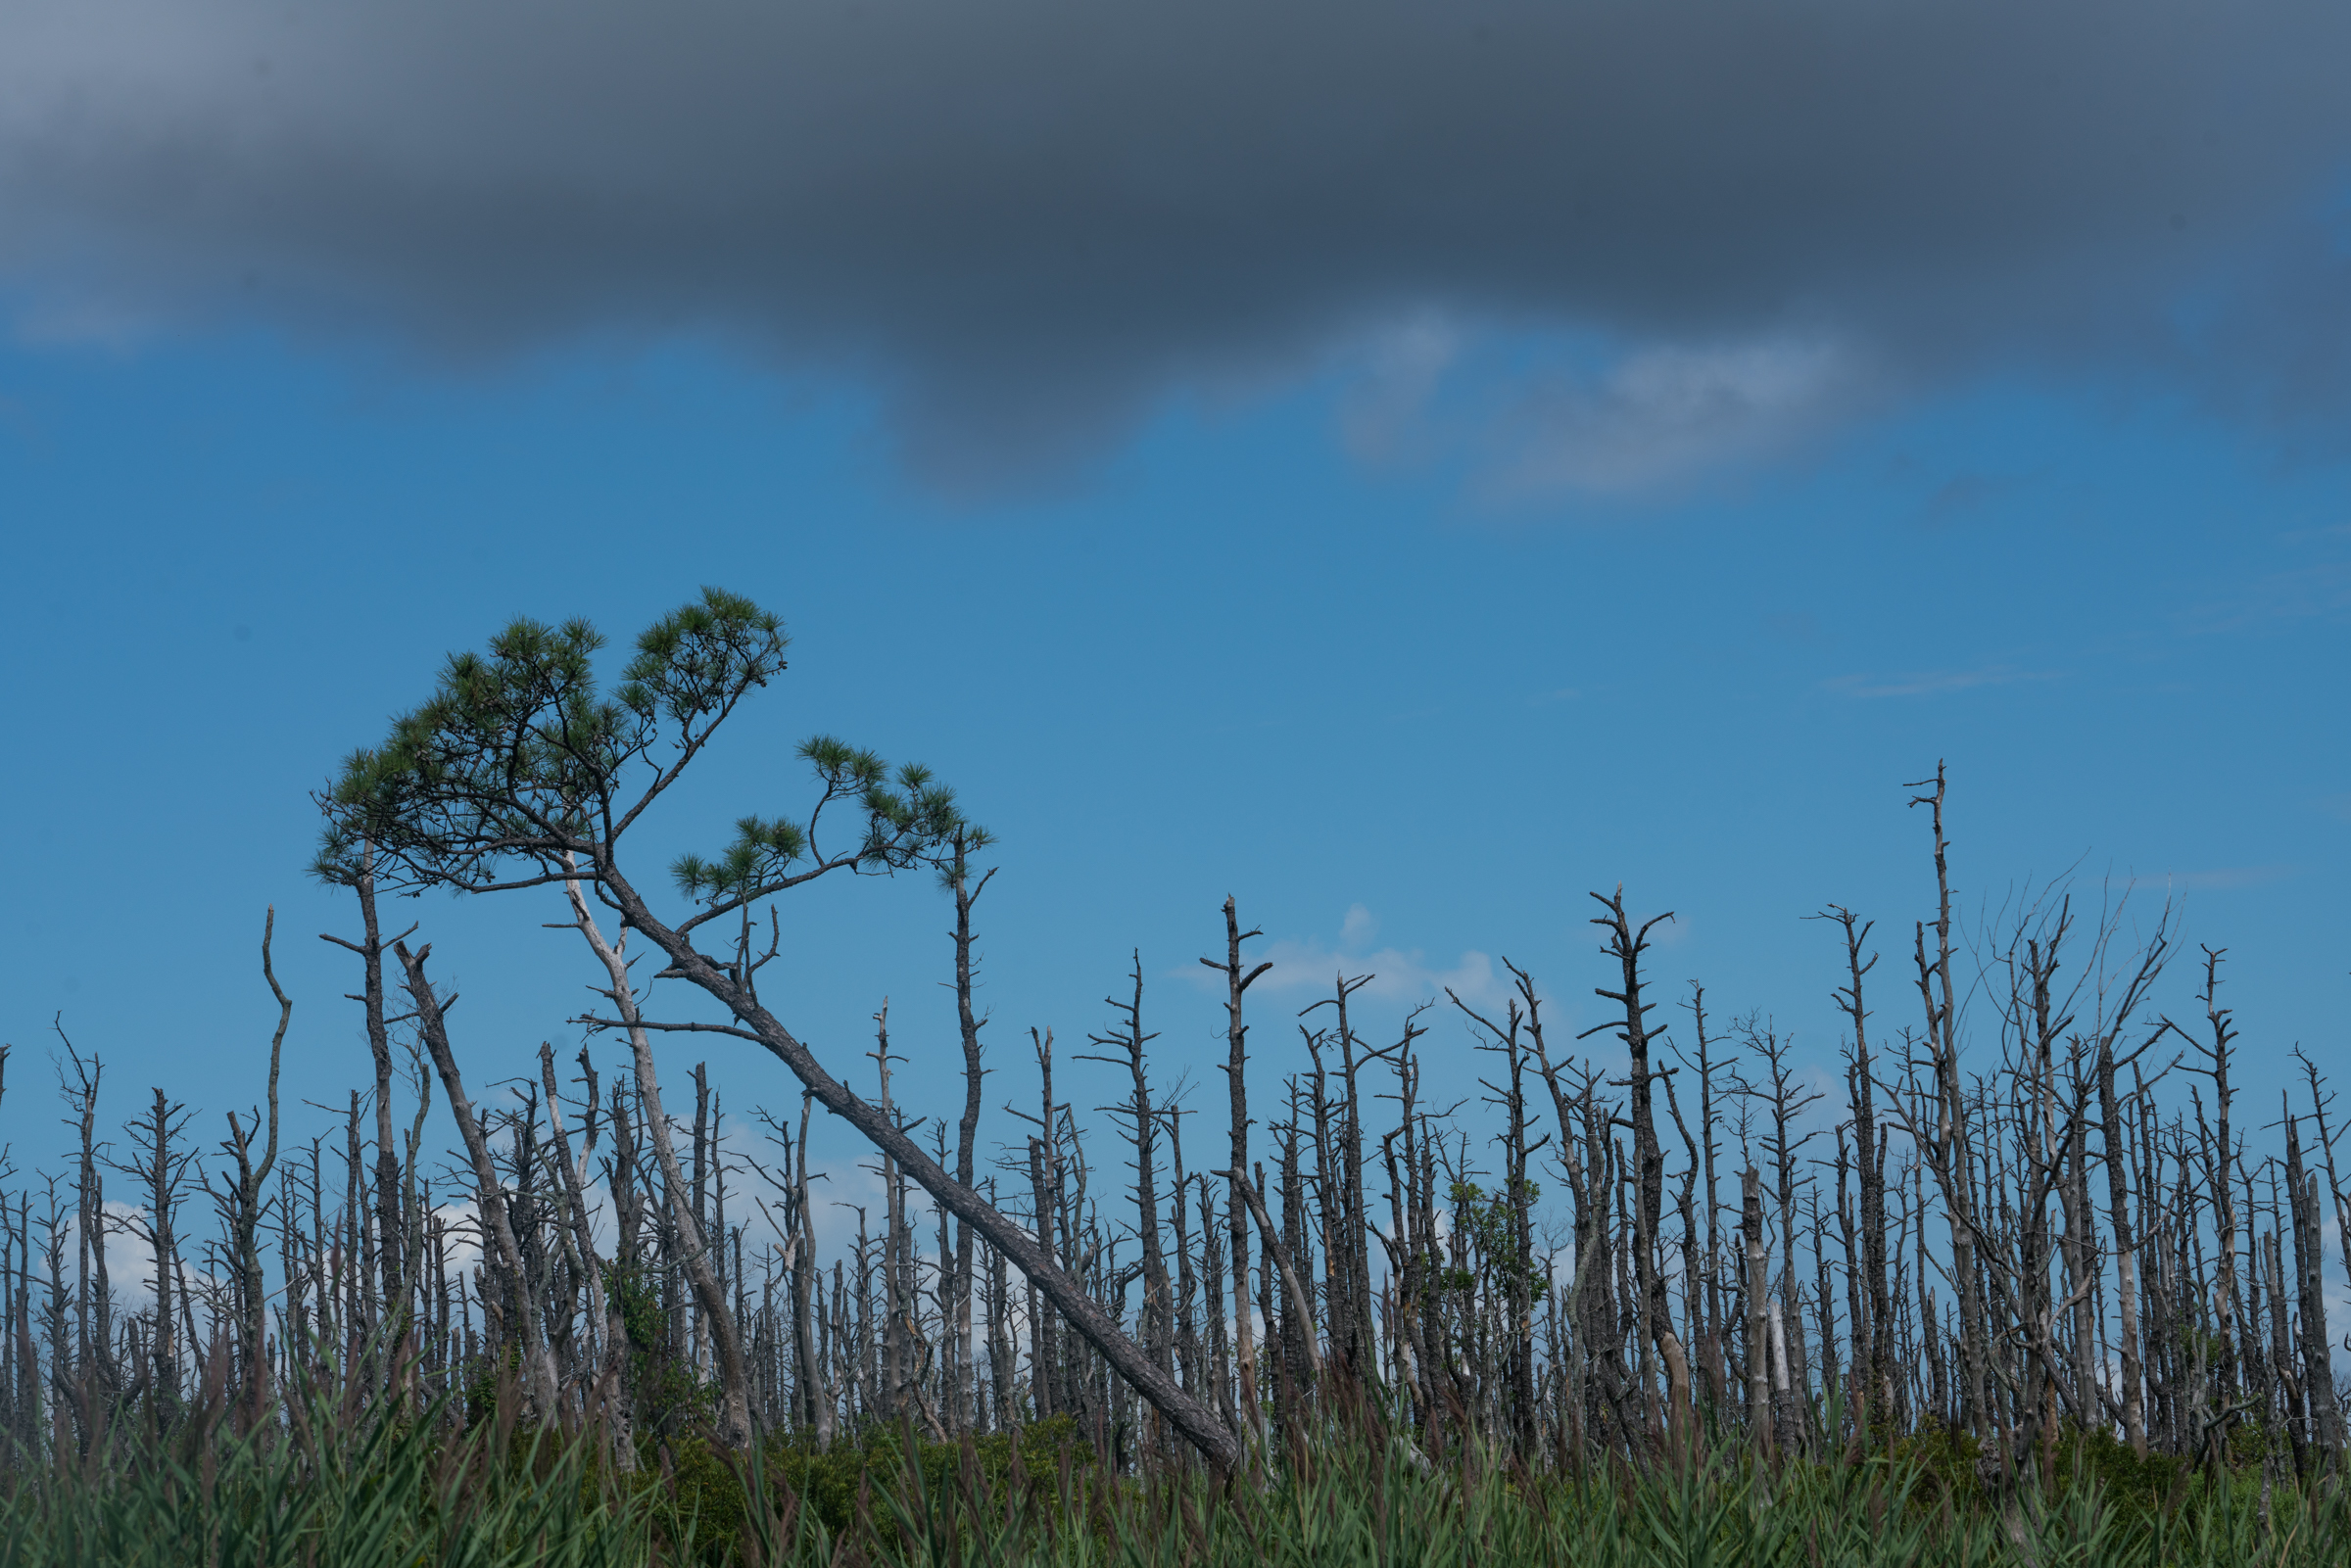 One of the many ghost forests on the Inner Banks of North Carolina. The low-lying area is cut with ditches meant to drain the land, but tides—slightly higher every year—bring salt water inundation of the trees.Photograph by Bill Marr